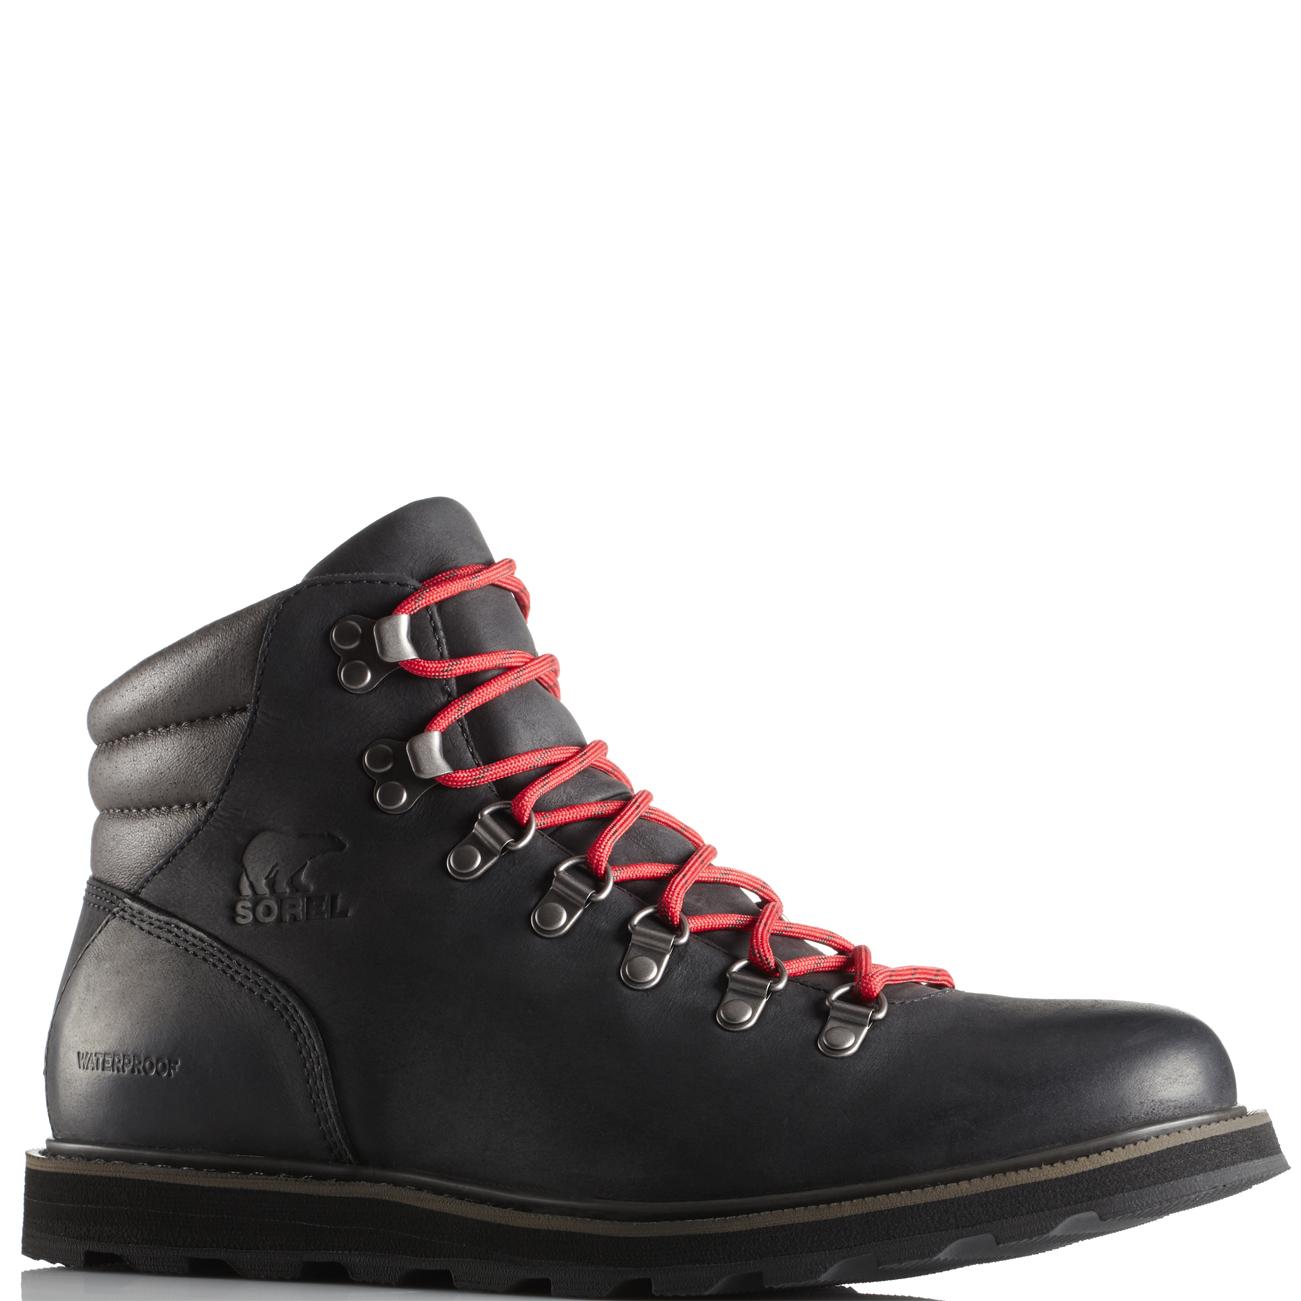 9bf70c6d9f4 Details about Mens Sorel Madson Hiker Leather Waterproof Walking Hiking  Ankle Boots US 8-14